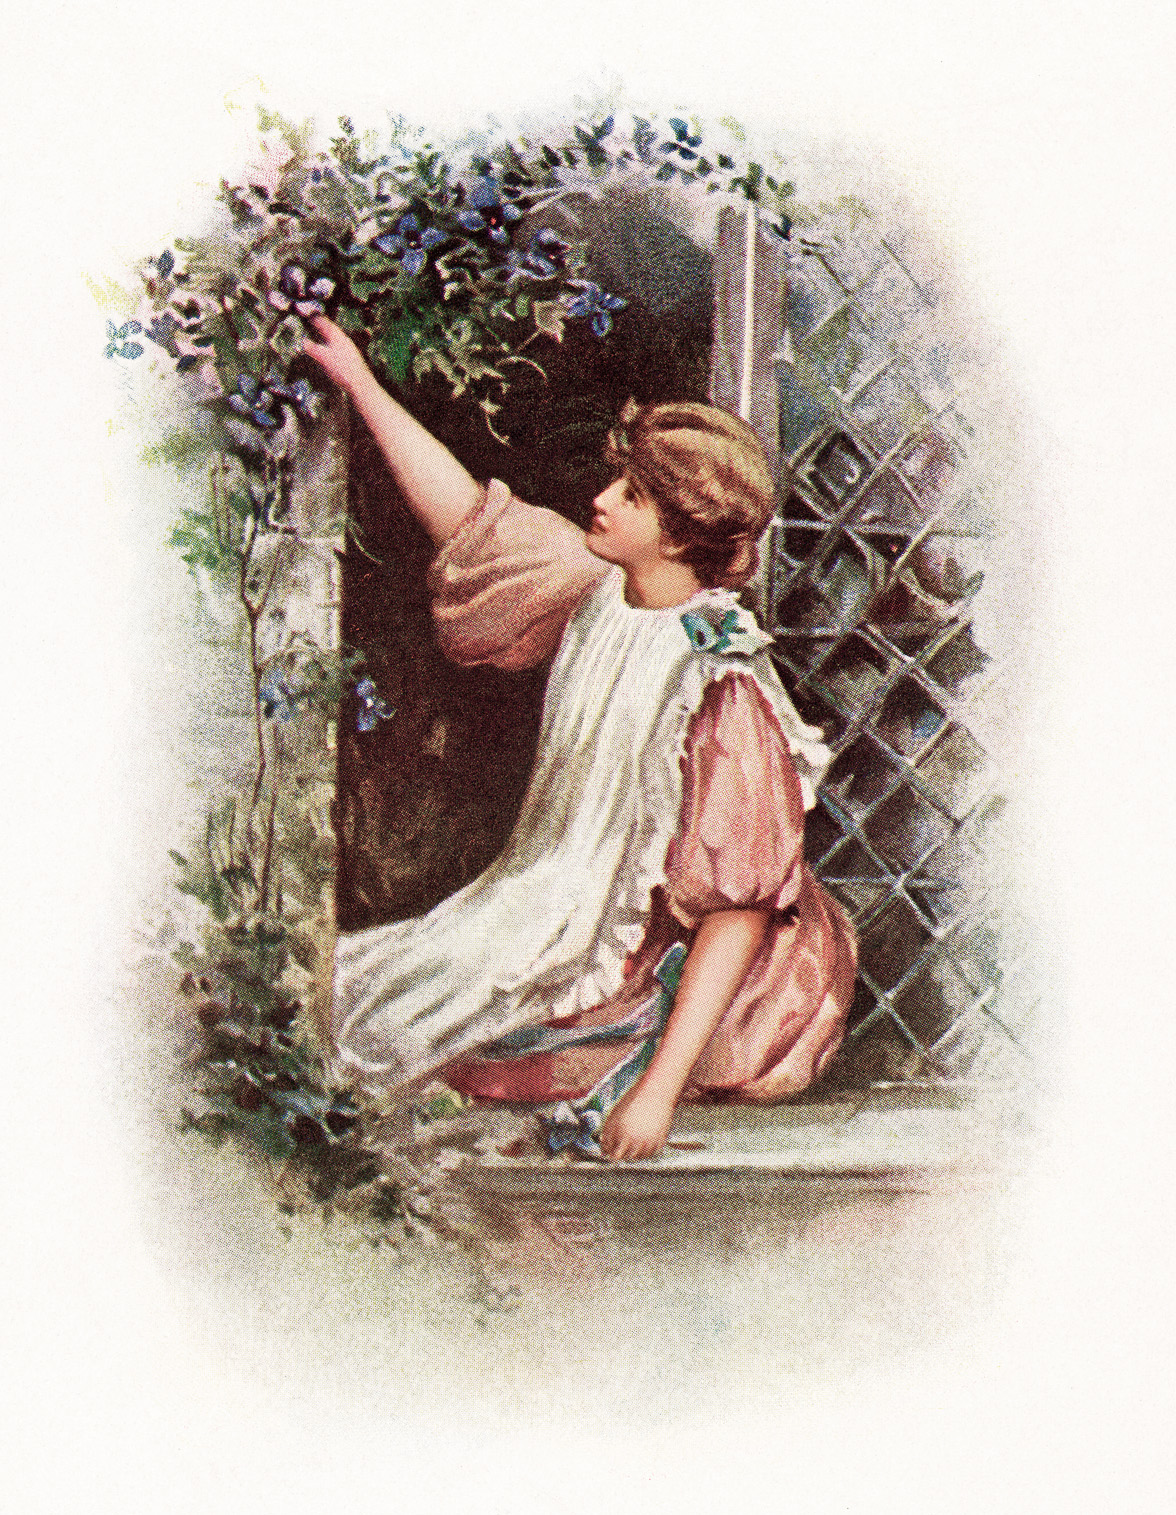 wild flowers from whittier, girl picking flowers, young lady seated in window, free vintage graphic, vine of flowers around window